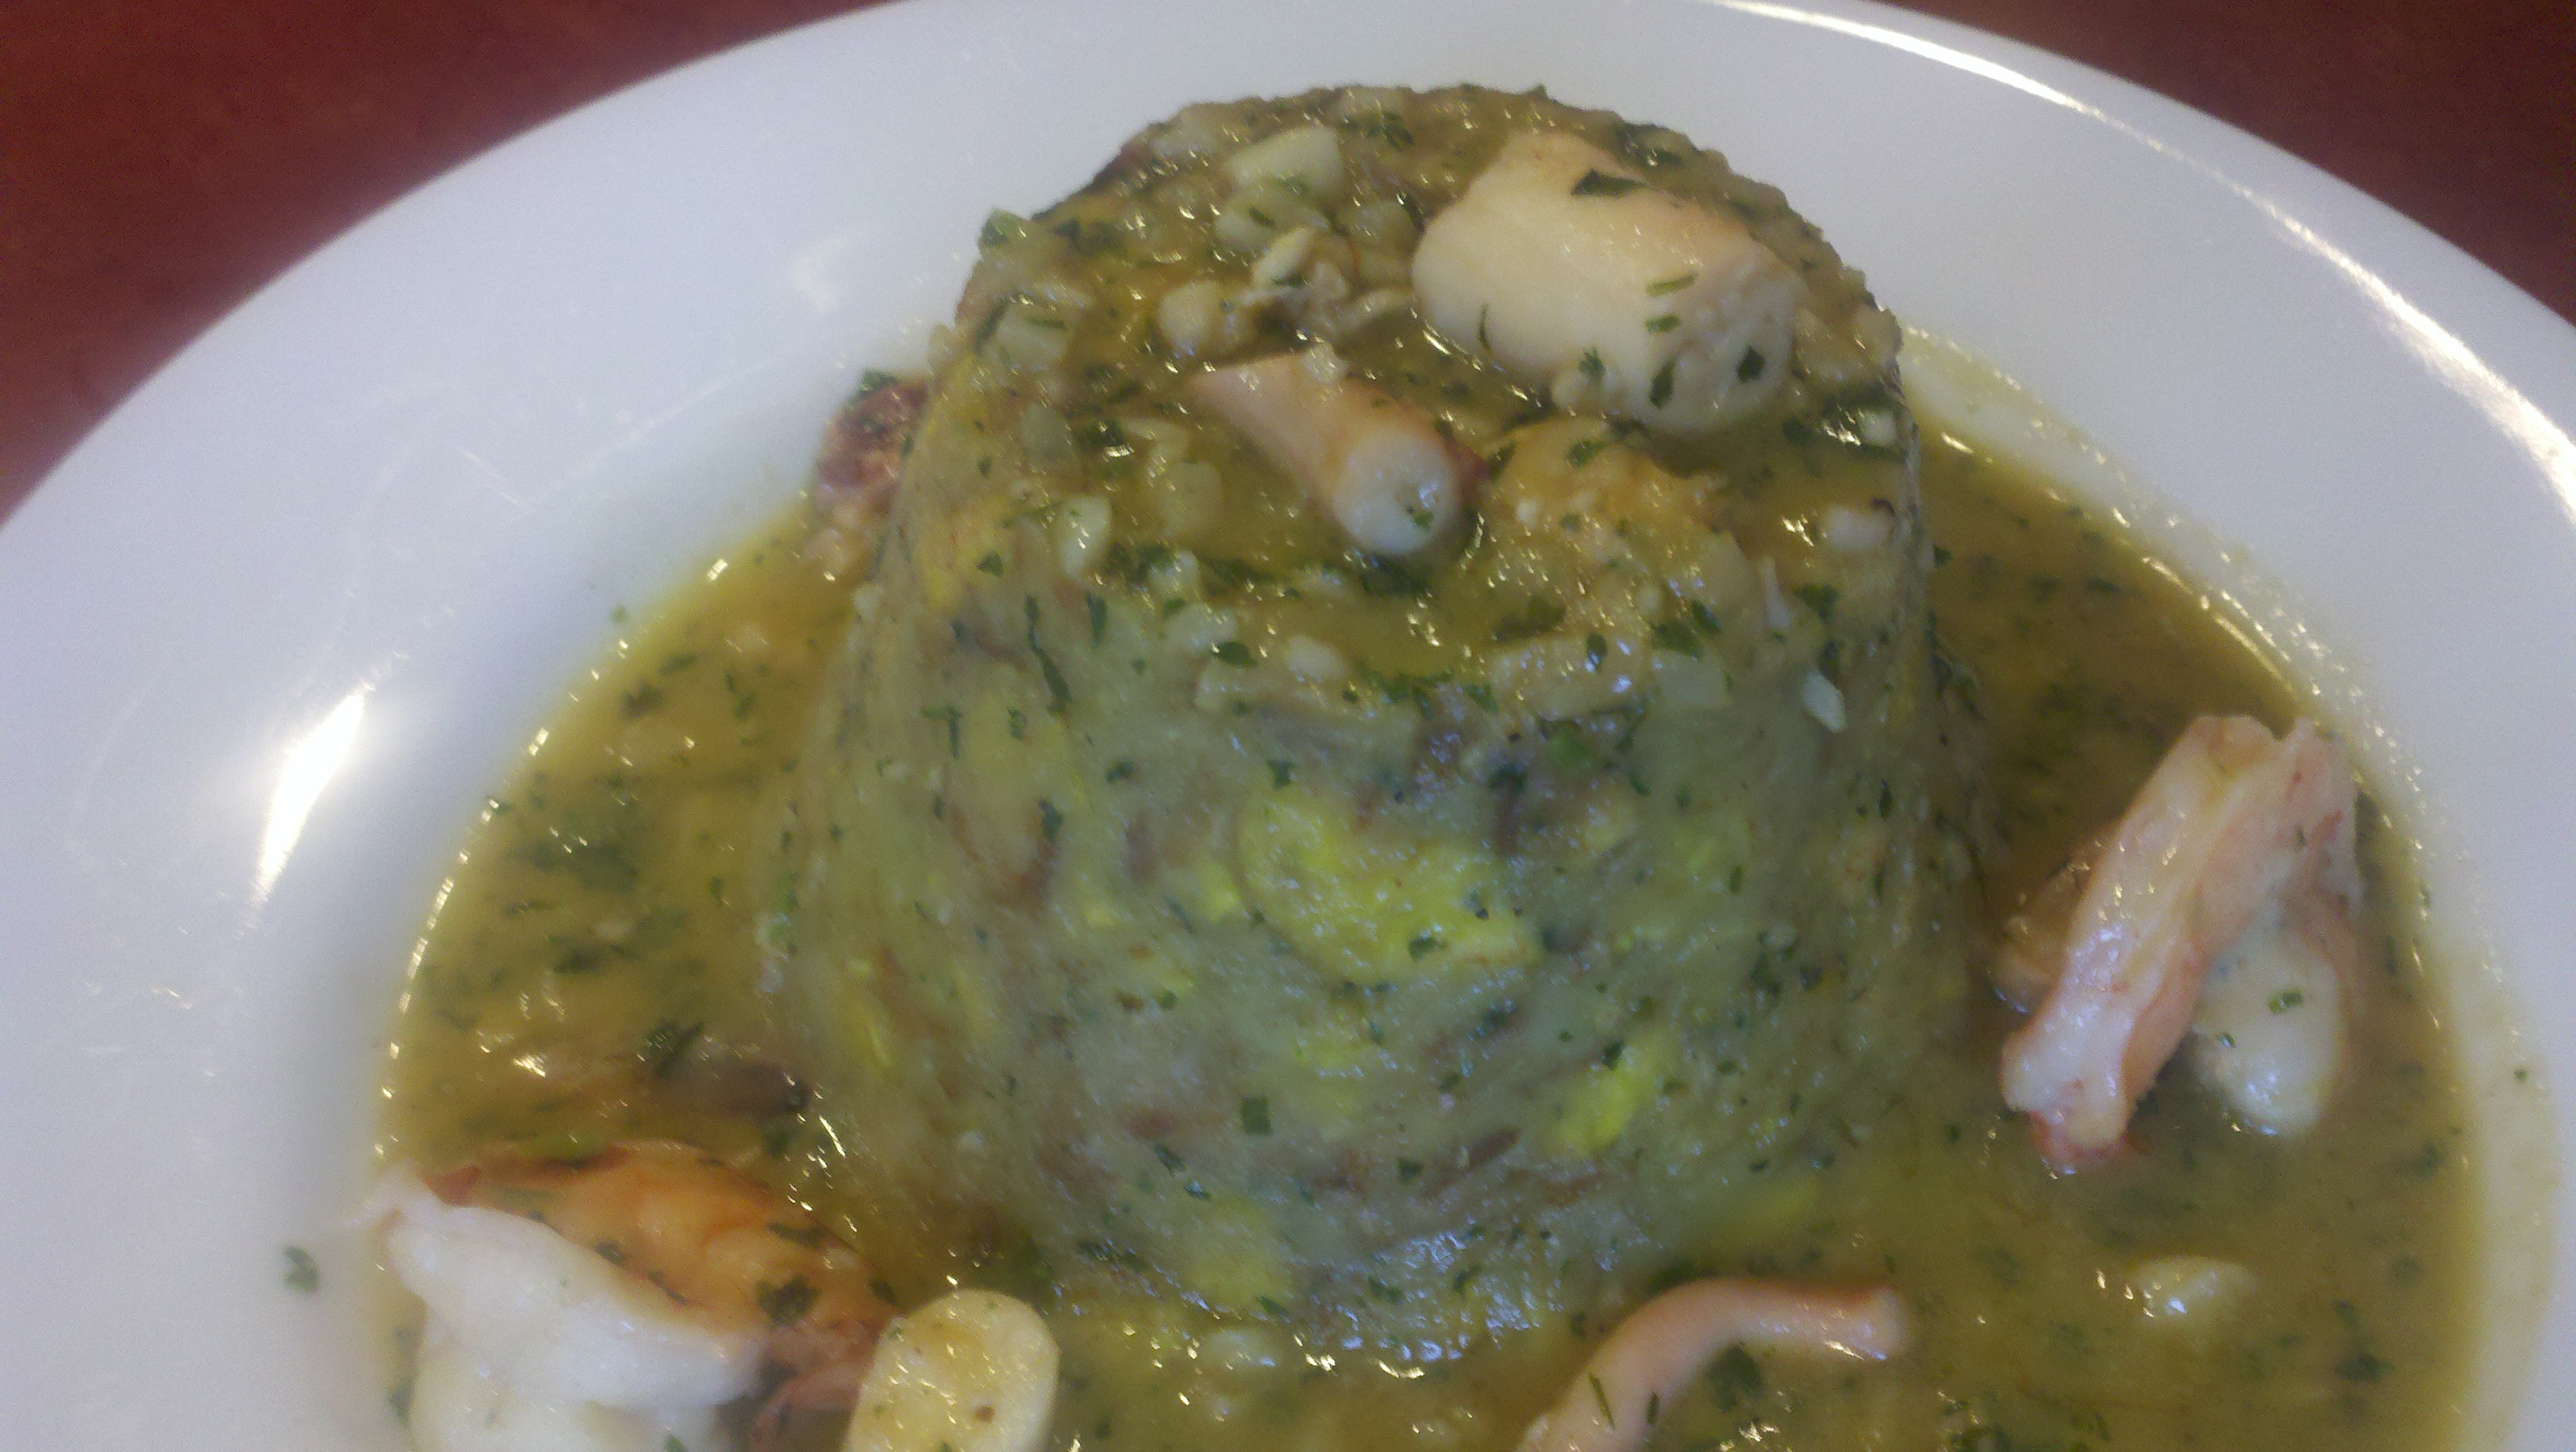 Mofongos Rellenos - Shrimp and Octopus in Garlic Sauce